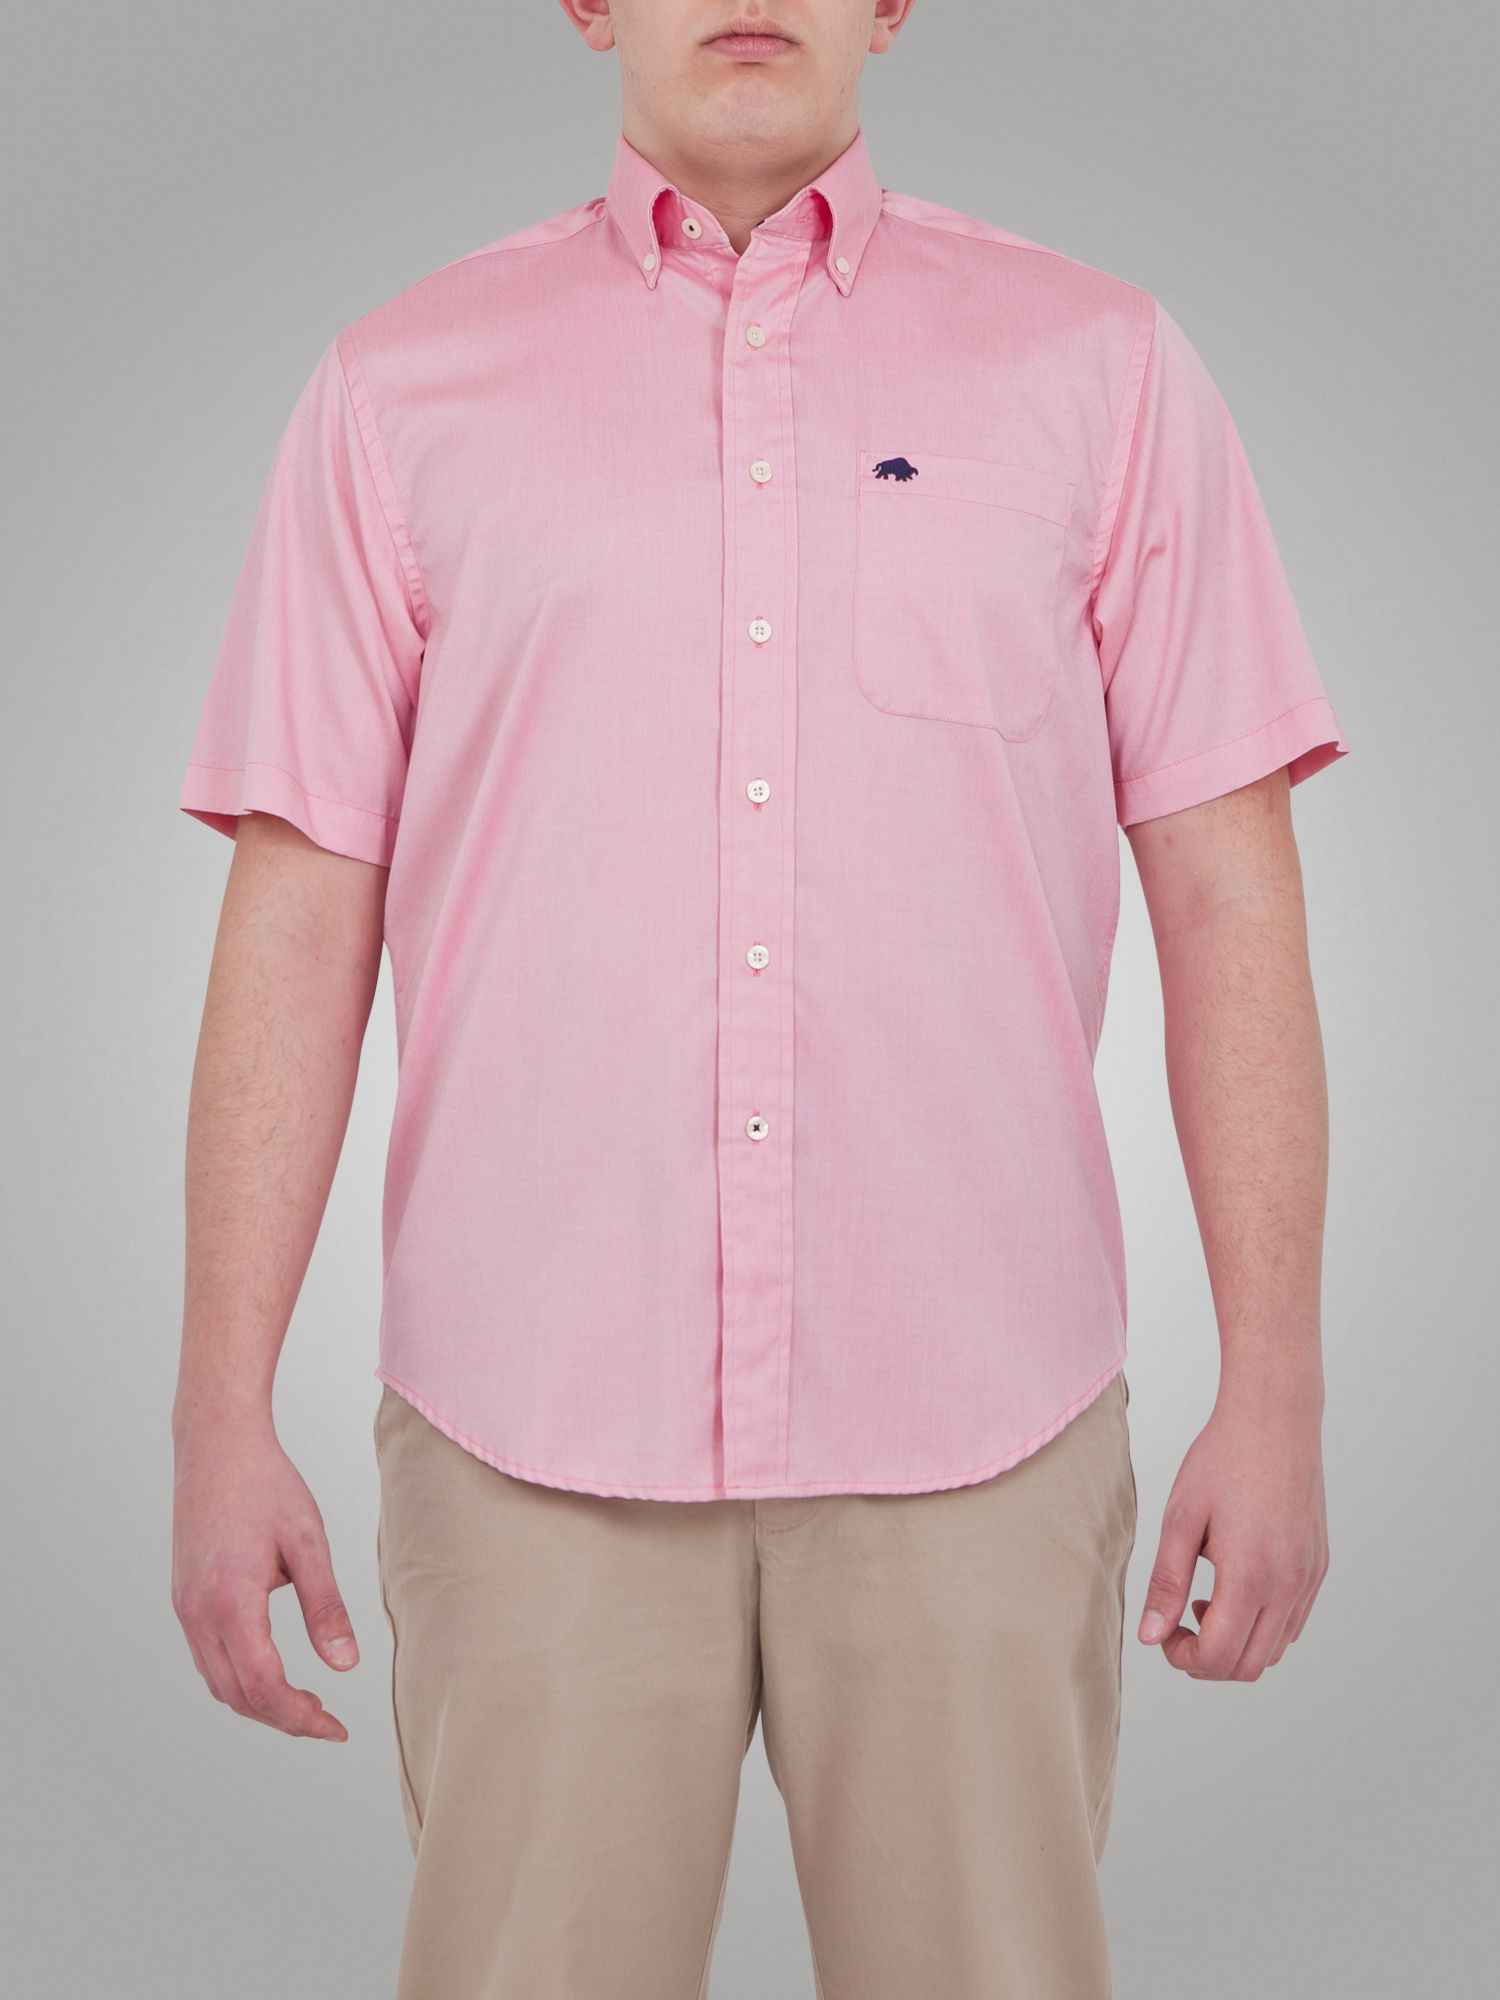 Raging bull big and tall s s oxford shirt in pink for men for Big and tall oxford shirts